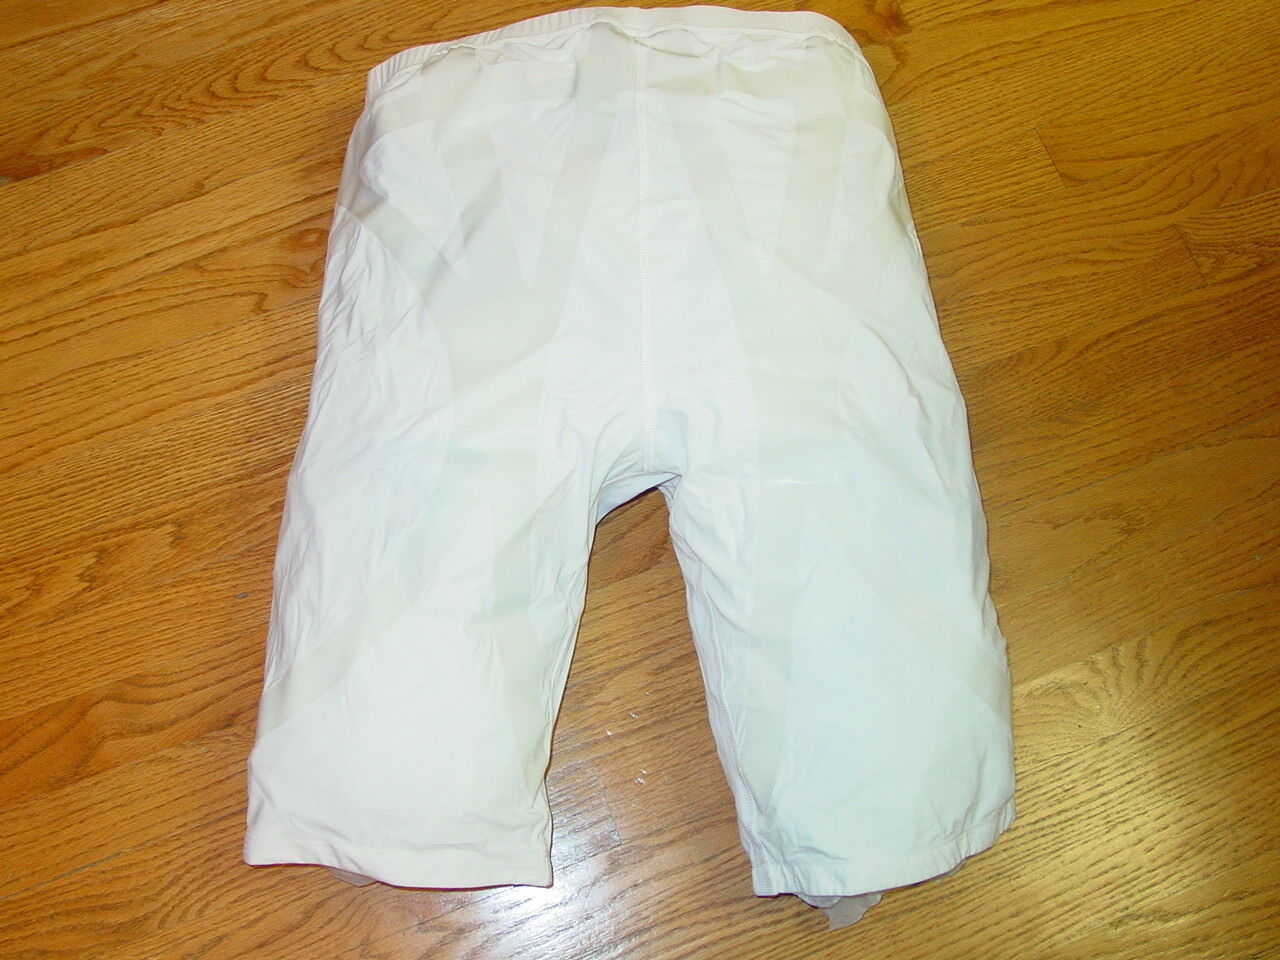 Mens 3xt Adidas Pweb Compression Shorts Basketball Football White xxxl Powerweb